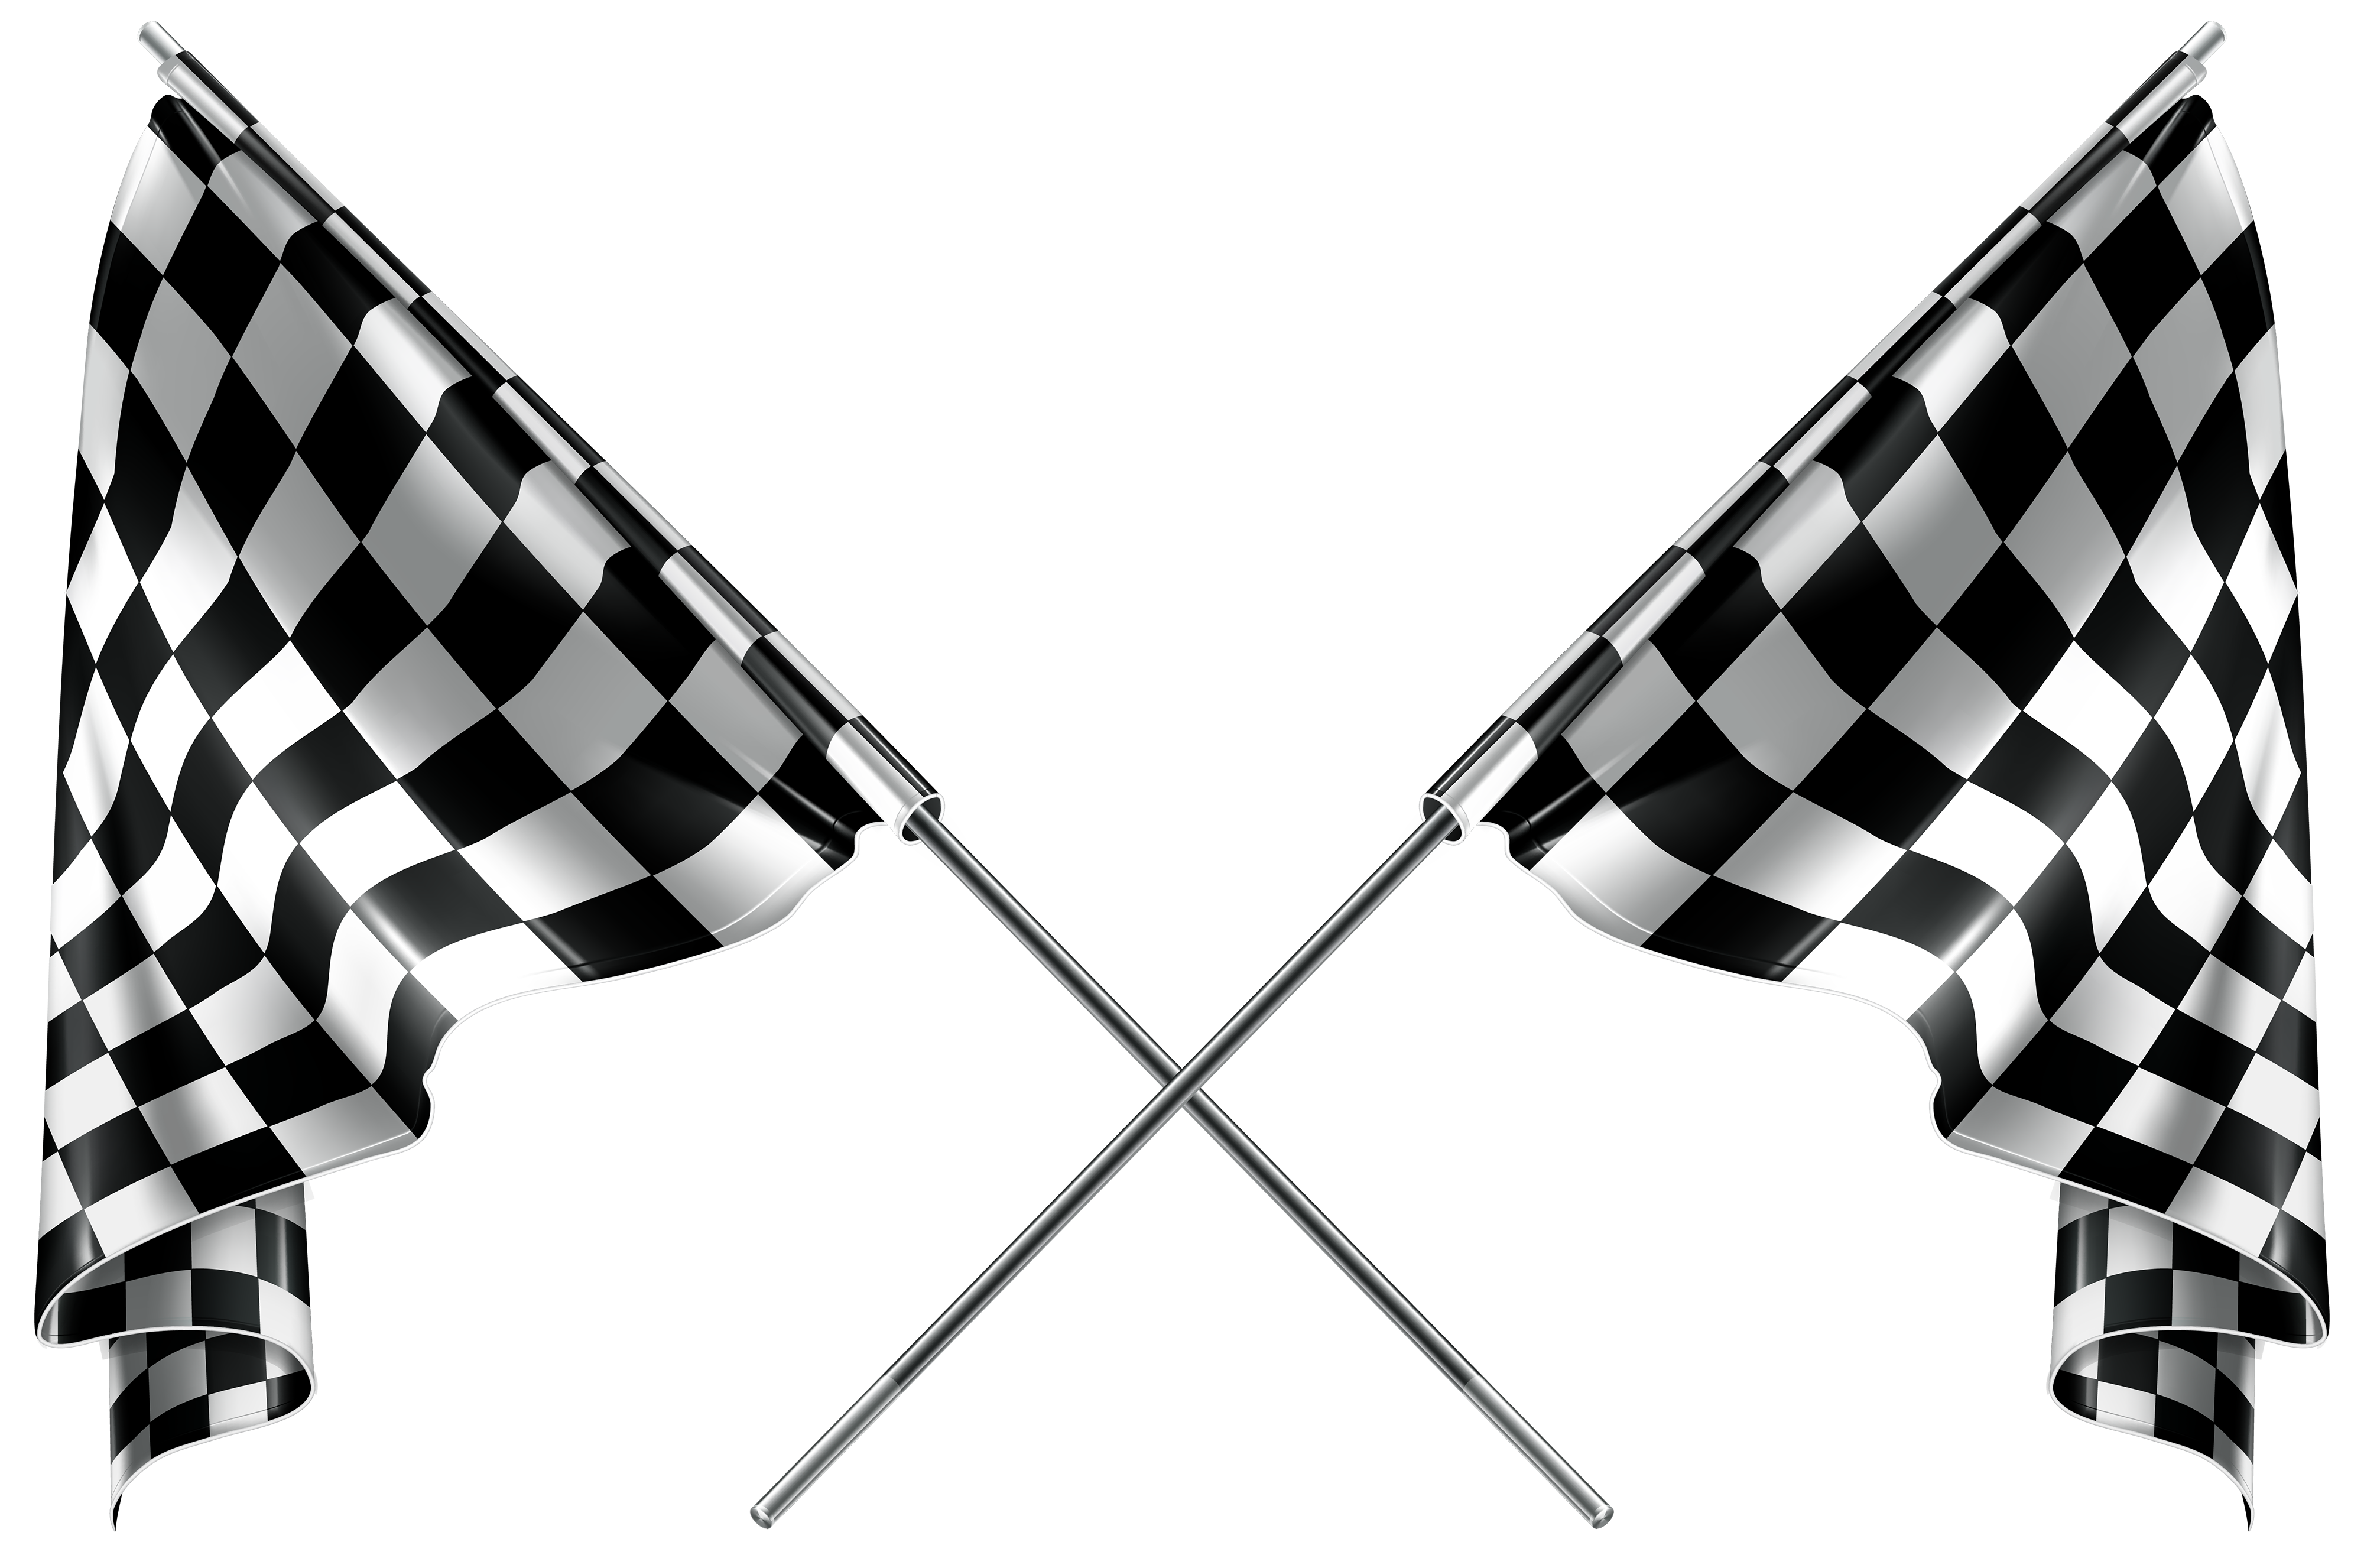 Racing flag png. Checkered flags clipart web